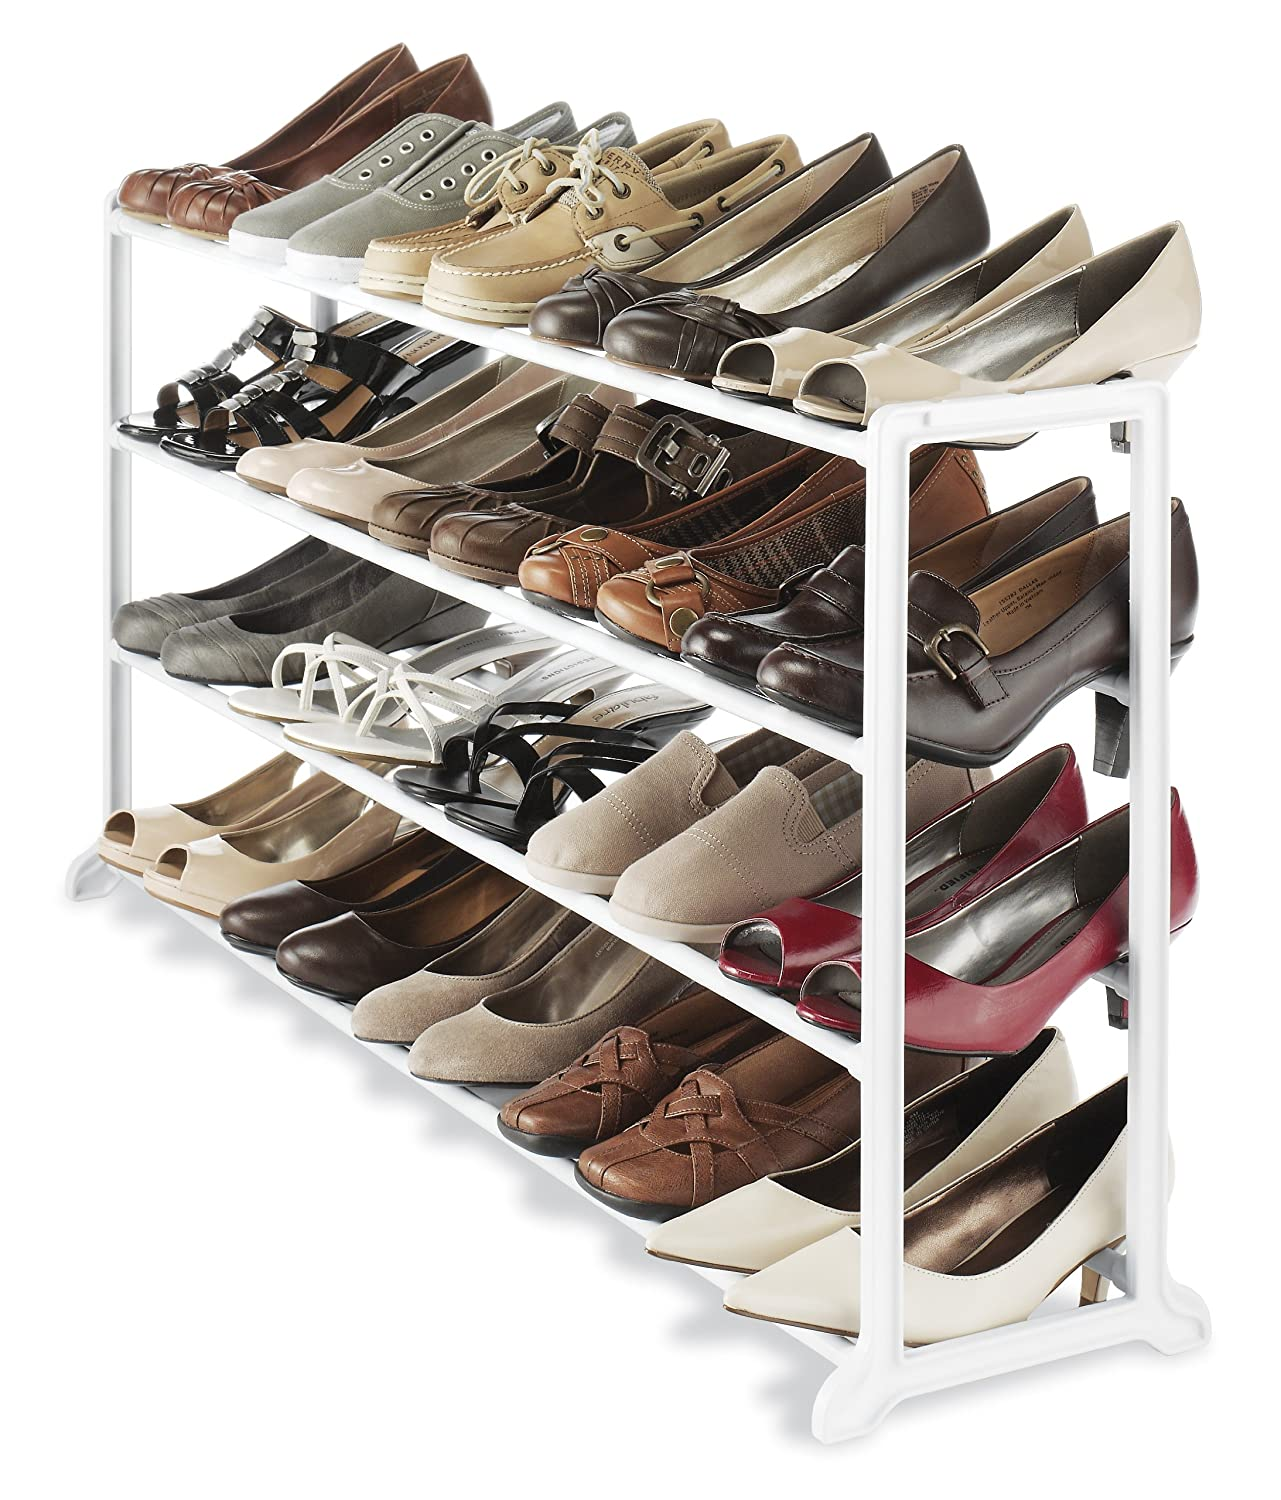 DIY Copper shoe rack with simple supplies from the hardware store.